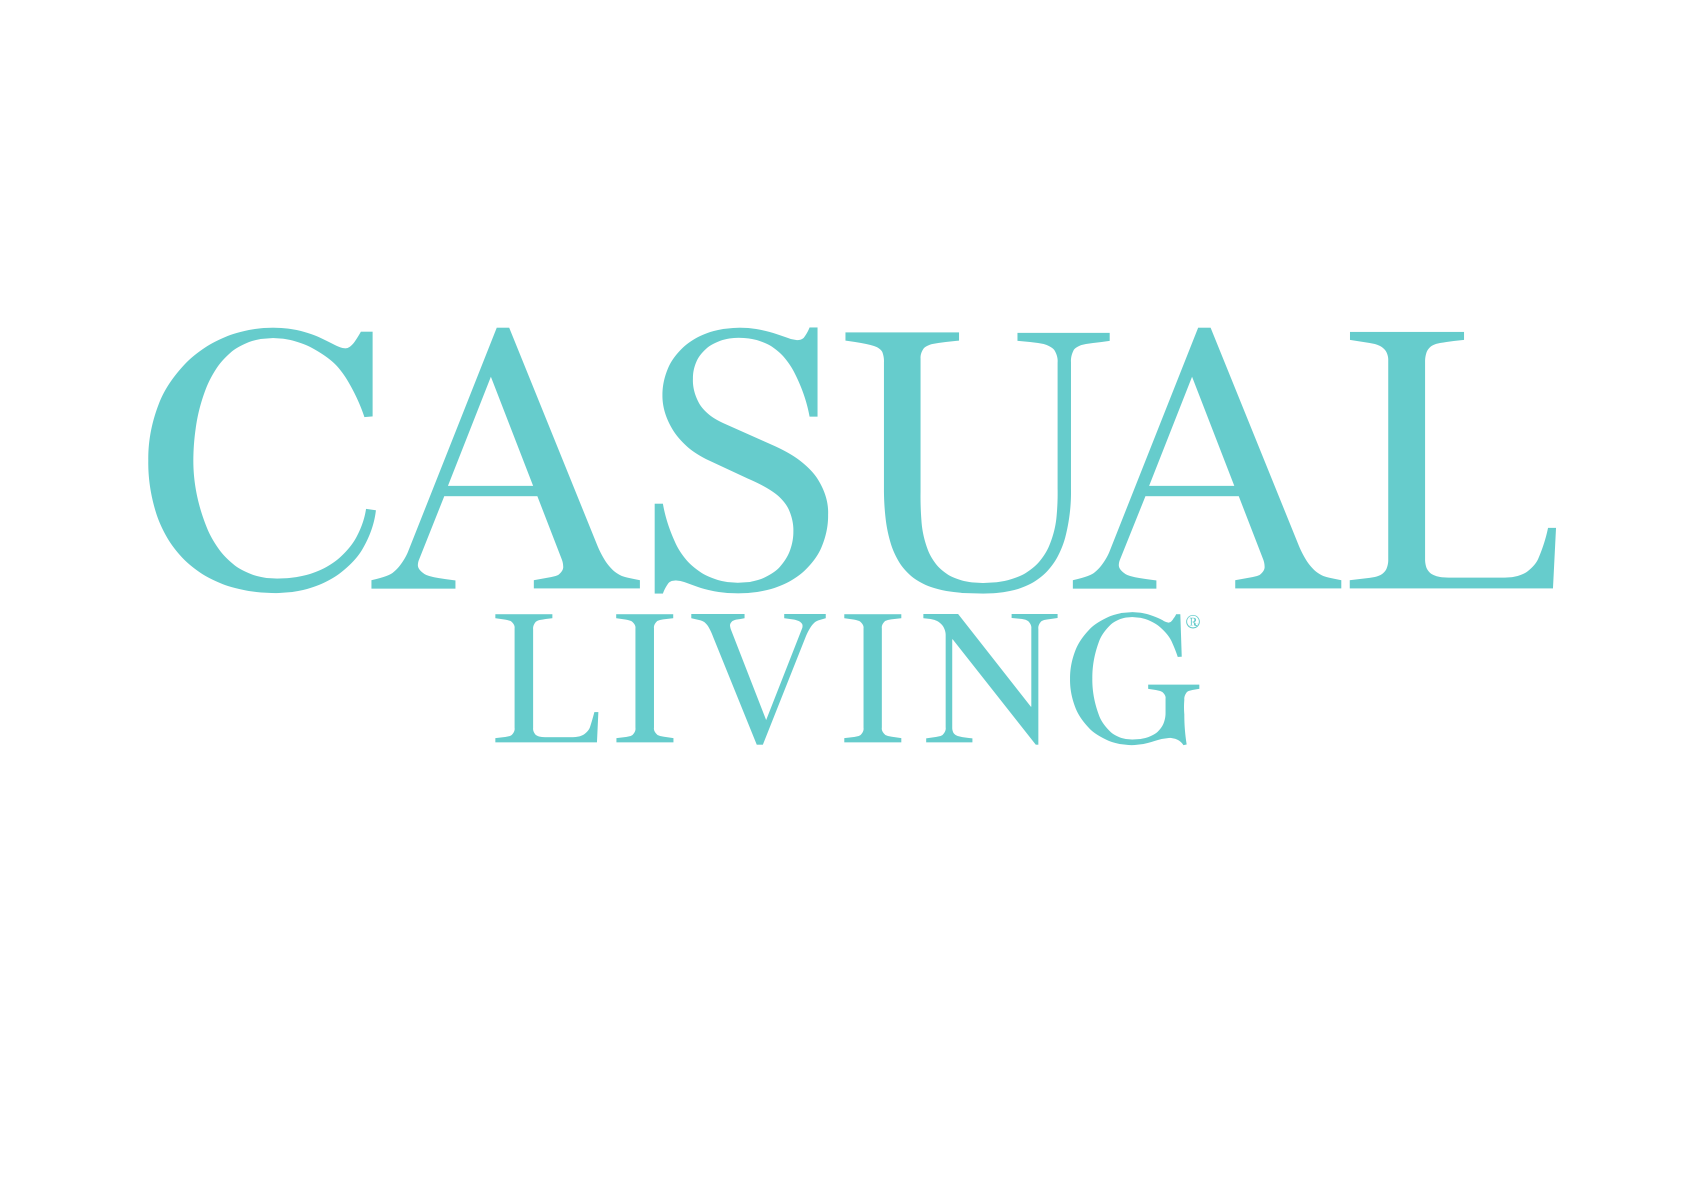 Casual Living | January 2, 2020